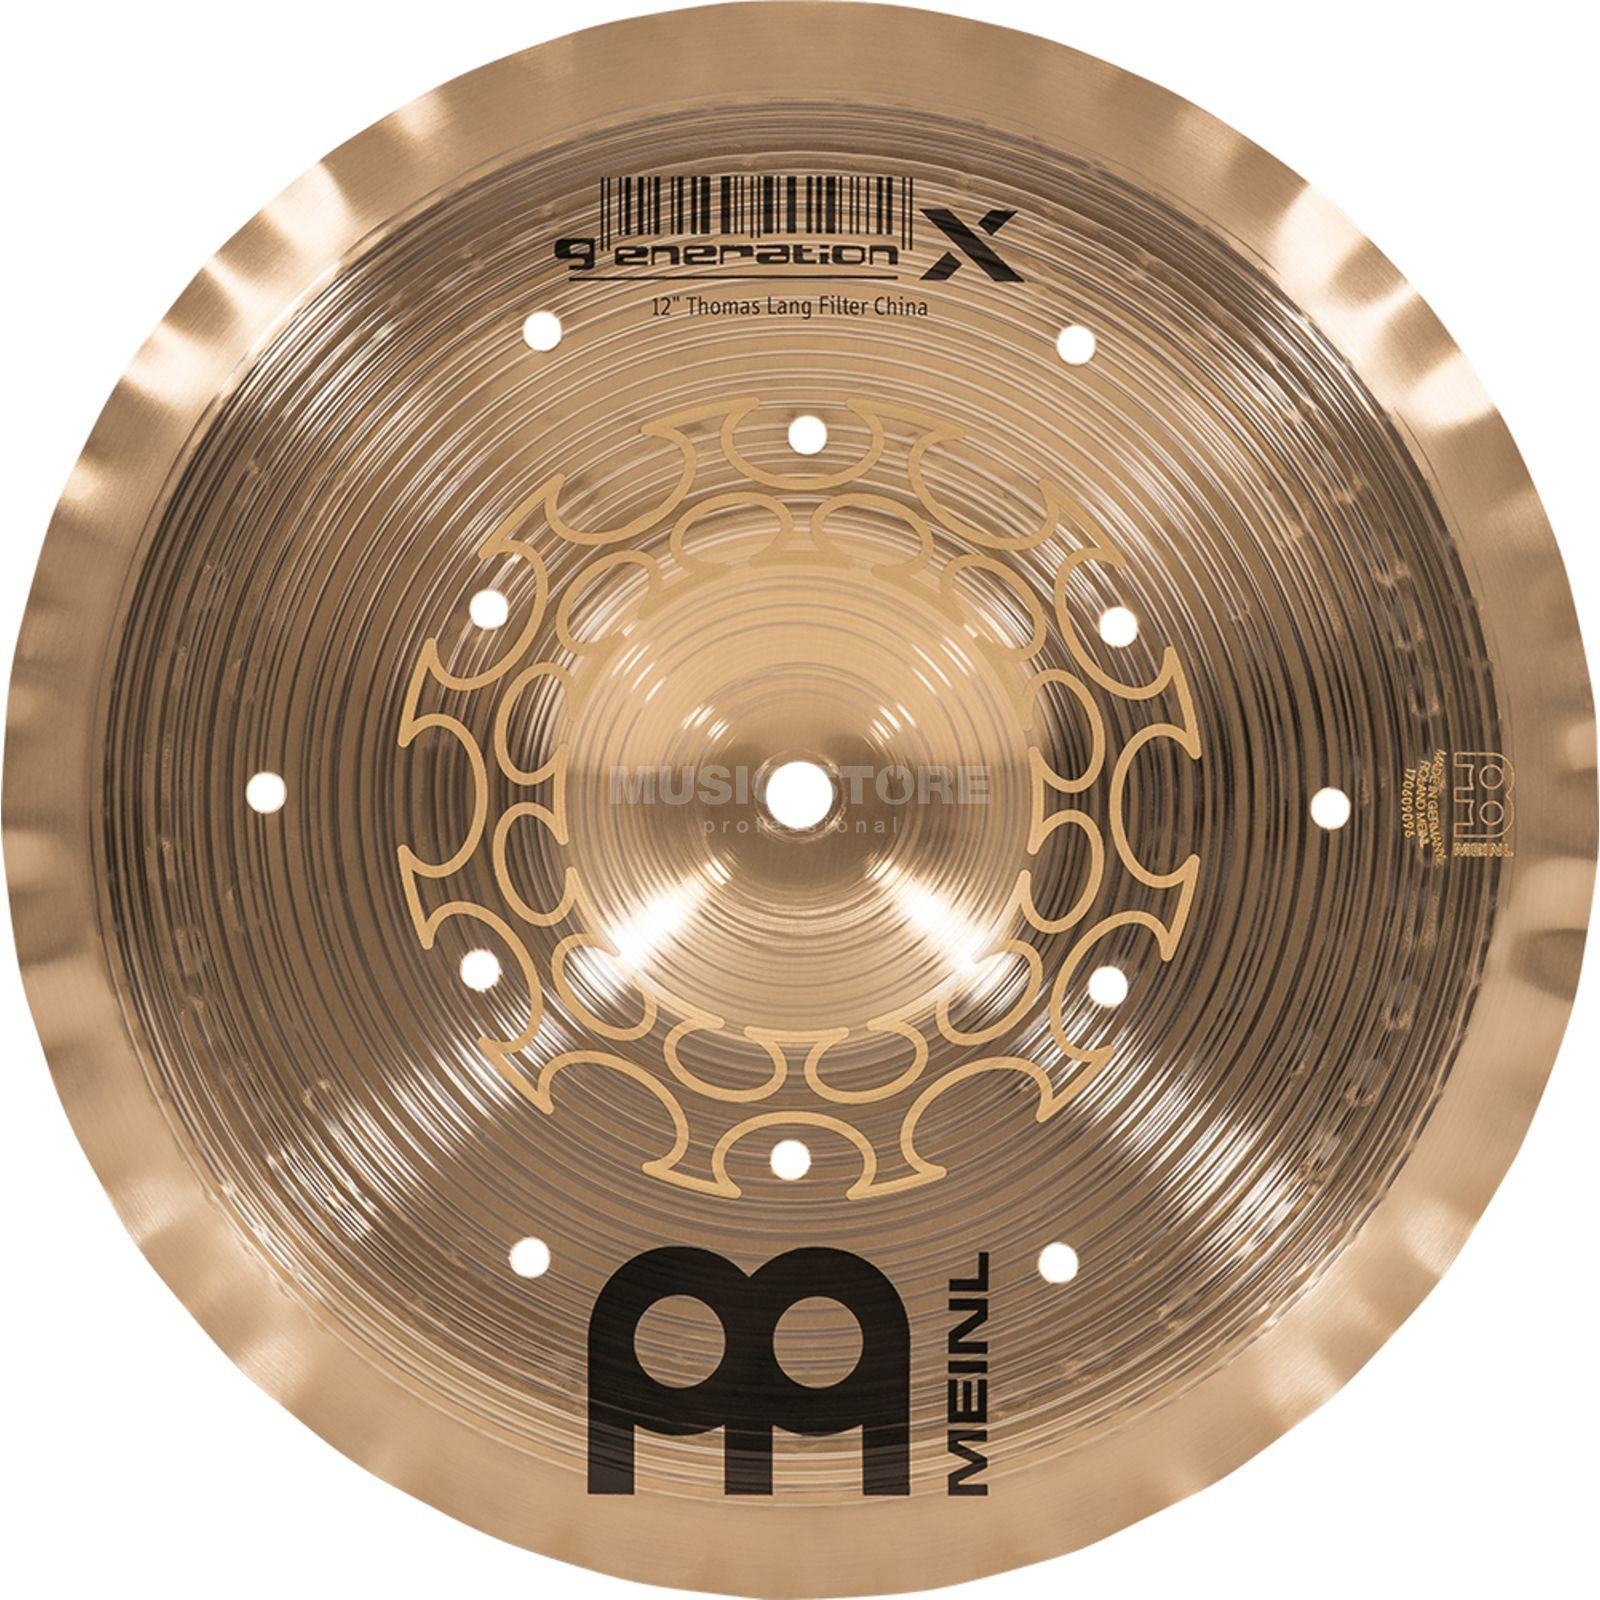 "Meinl Generation X Filter China 12"", GX-12FCH Image du produit"